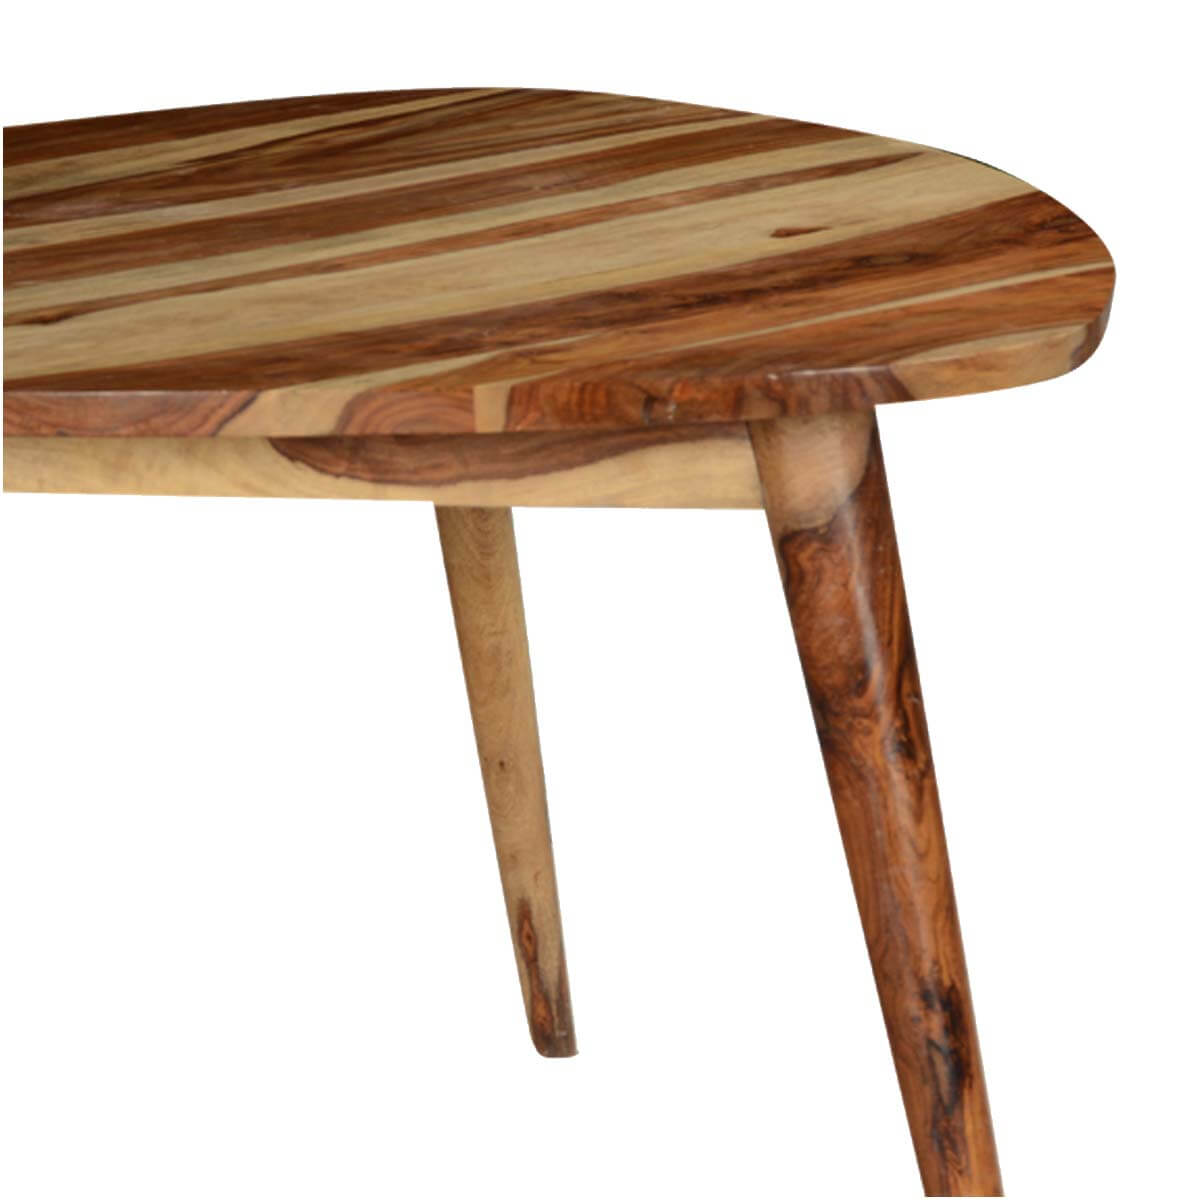 52 Triangular Solid Wood Dinette Dining Table : 74653 from www.sierralivingconcepts.com size 1200 x 1200 jpeg 84kB